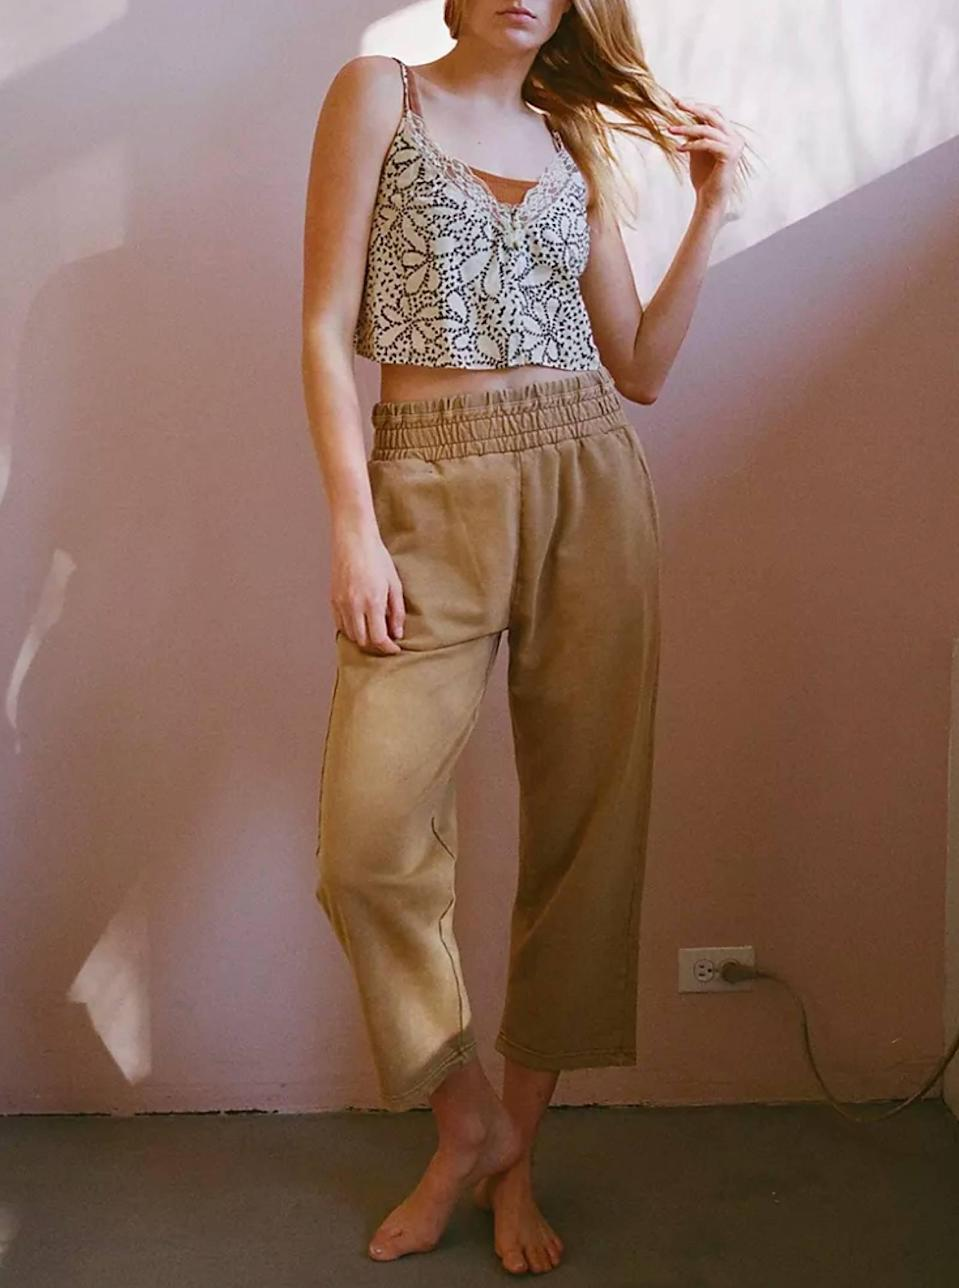 """$49, Urban Outfitters. <a href=""""https://www.urbanoutfitters.com/shop/out-from-under-olive-slouchy-sweatpant?"""" rel=""""nofollow noopener"""" target=""""_blank"""" data-ylk=""""slk:Get it now!"""" class=""""link rapid-noclick-resp"""">Get it now!</a>"""